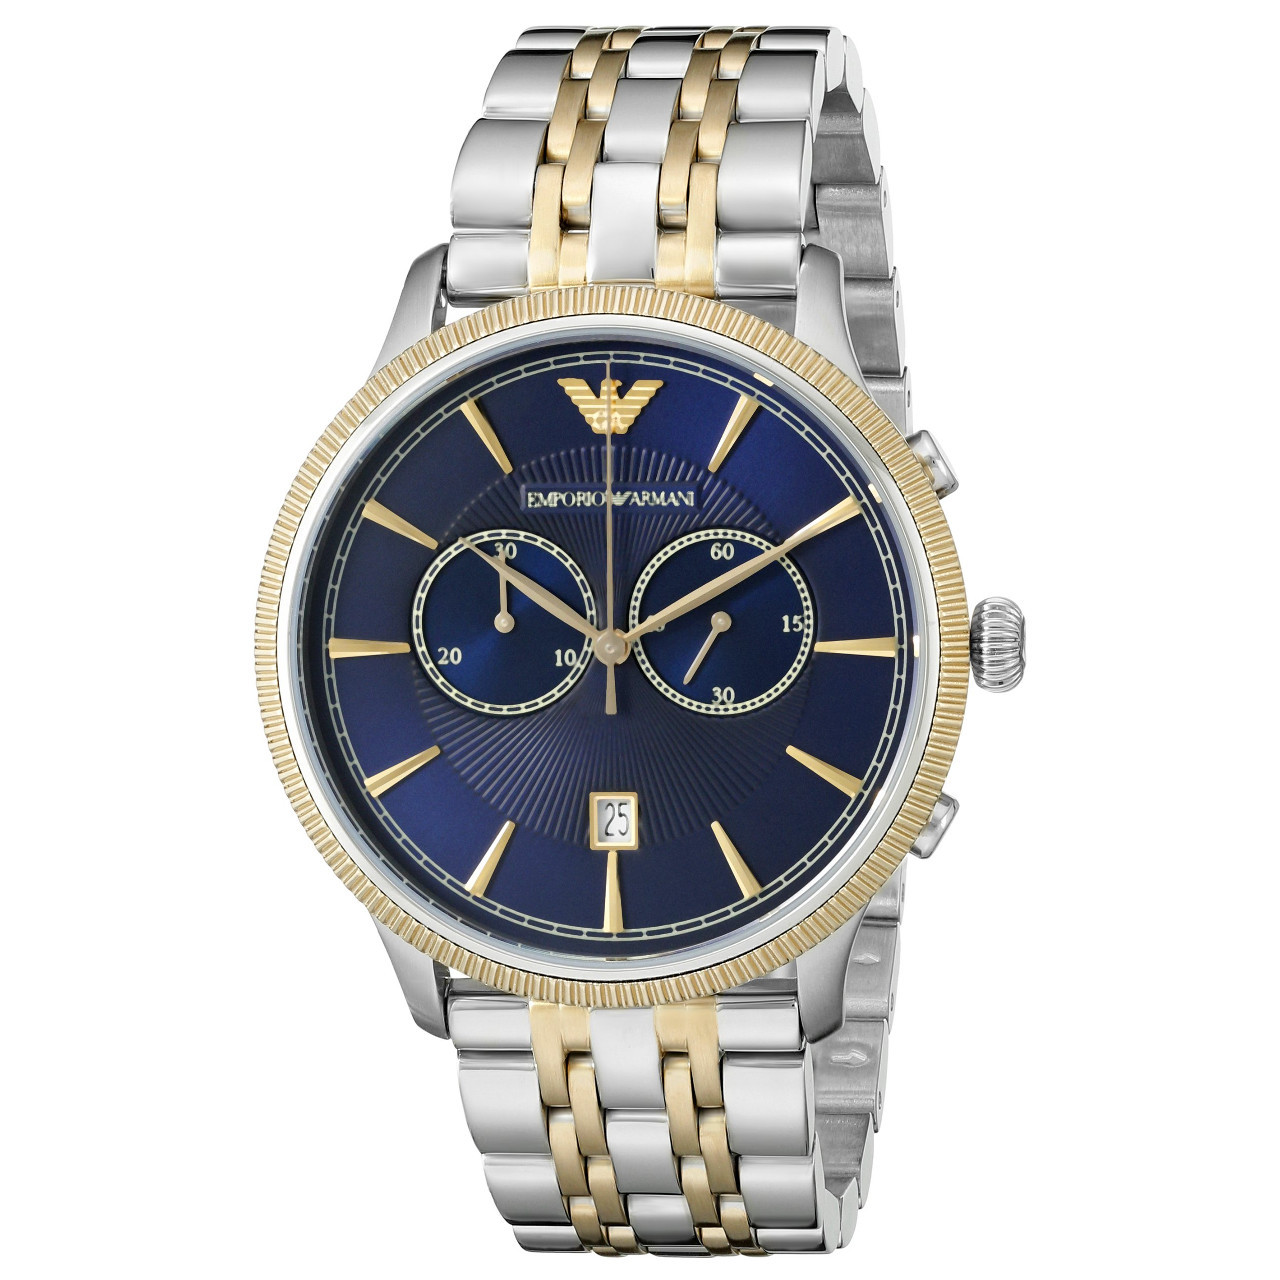 Emporio-Armani-AR1847-Classic-Blue-Dial-Two-tone-Stainless-Steel-Chronograph-Mens